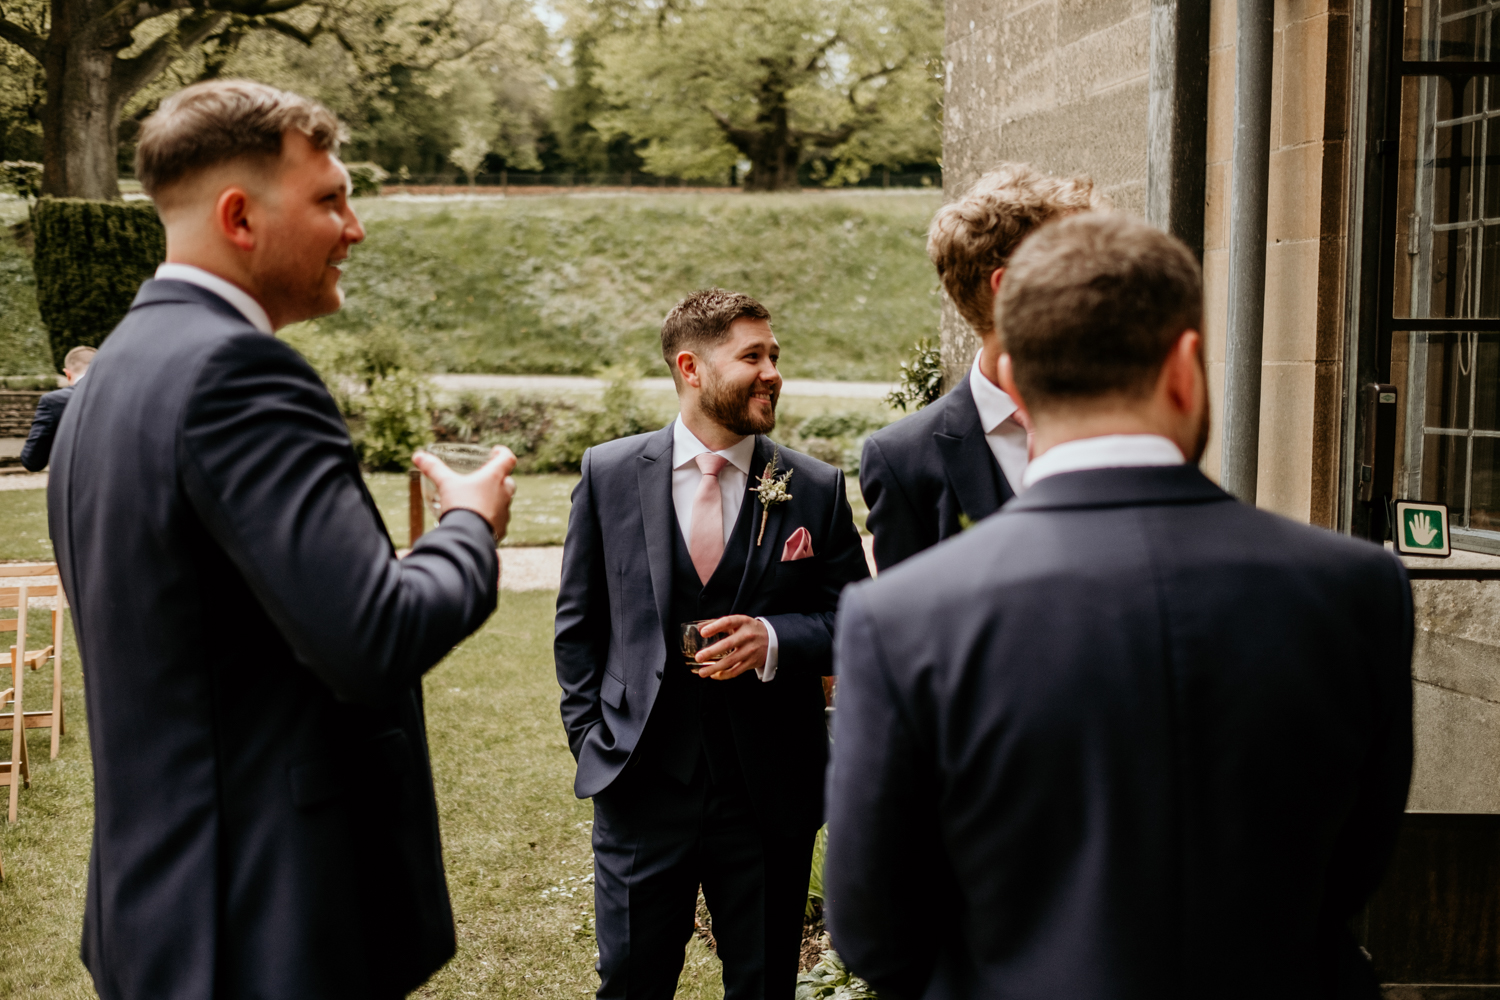 groom drinking with groomsmen before the outdoor ceremony at Coombe Lodge Blagdon venue